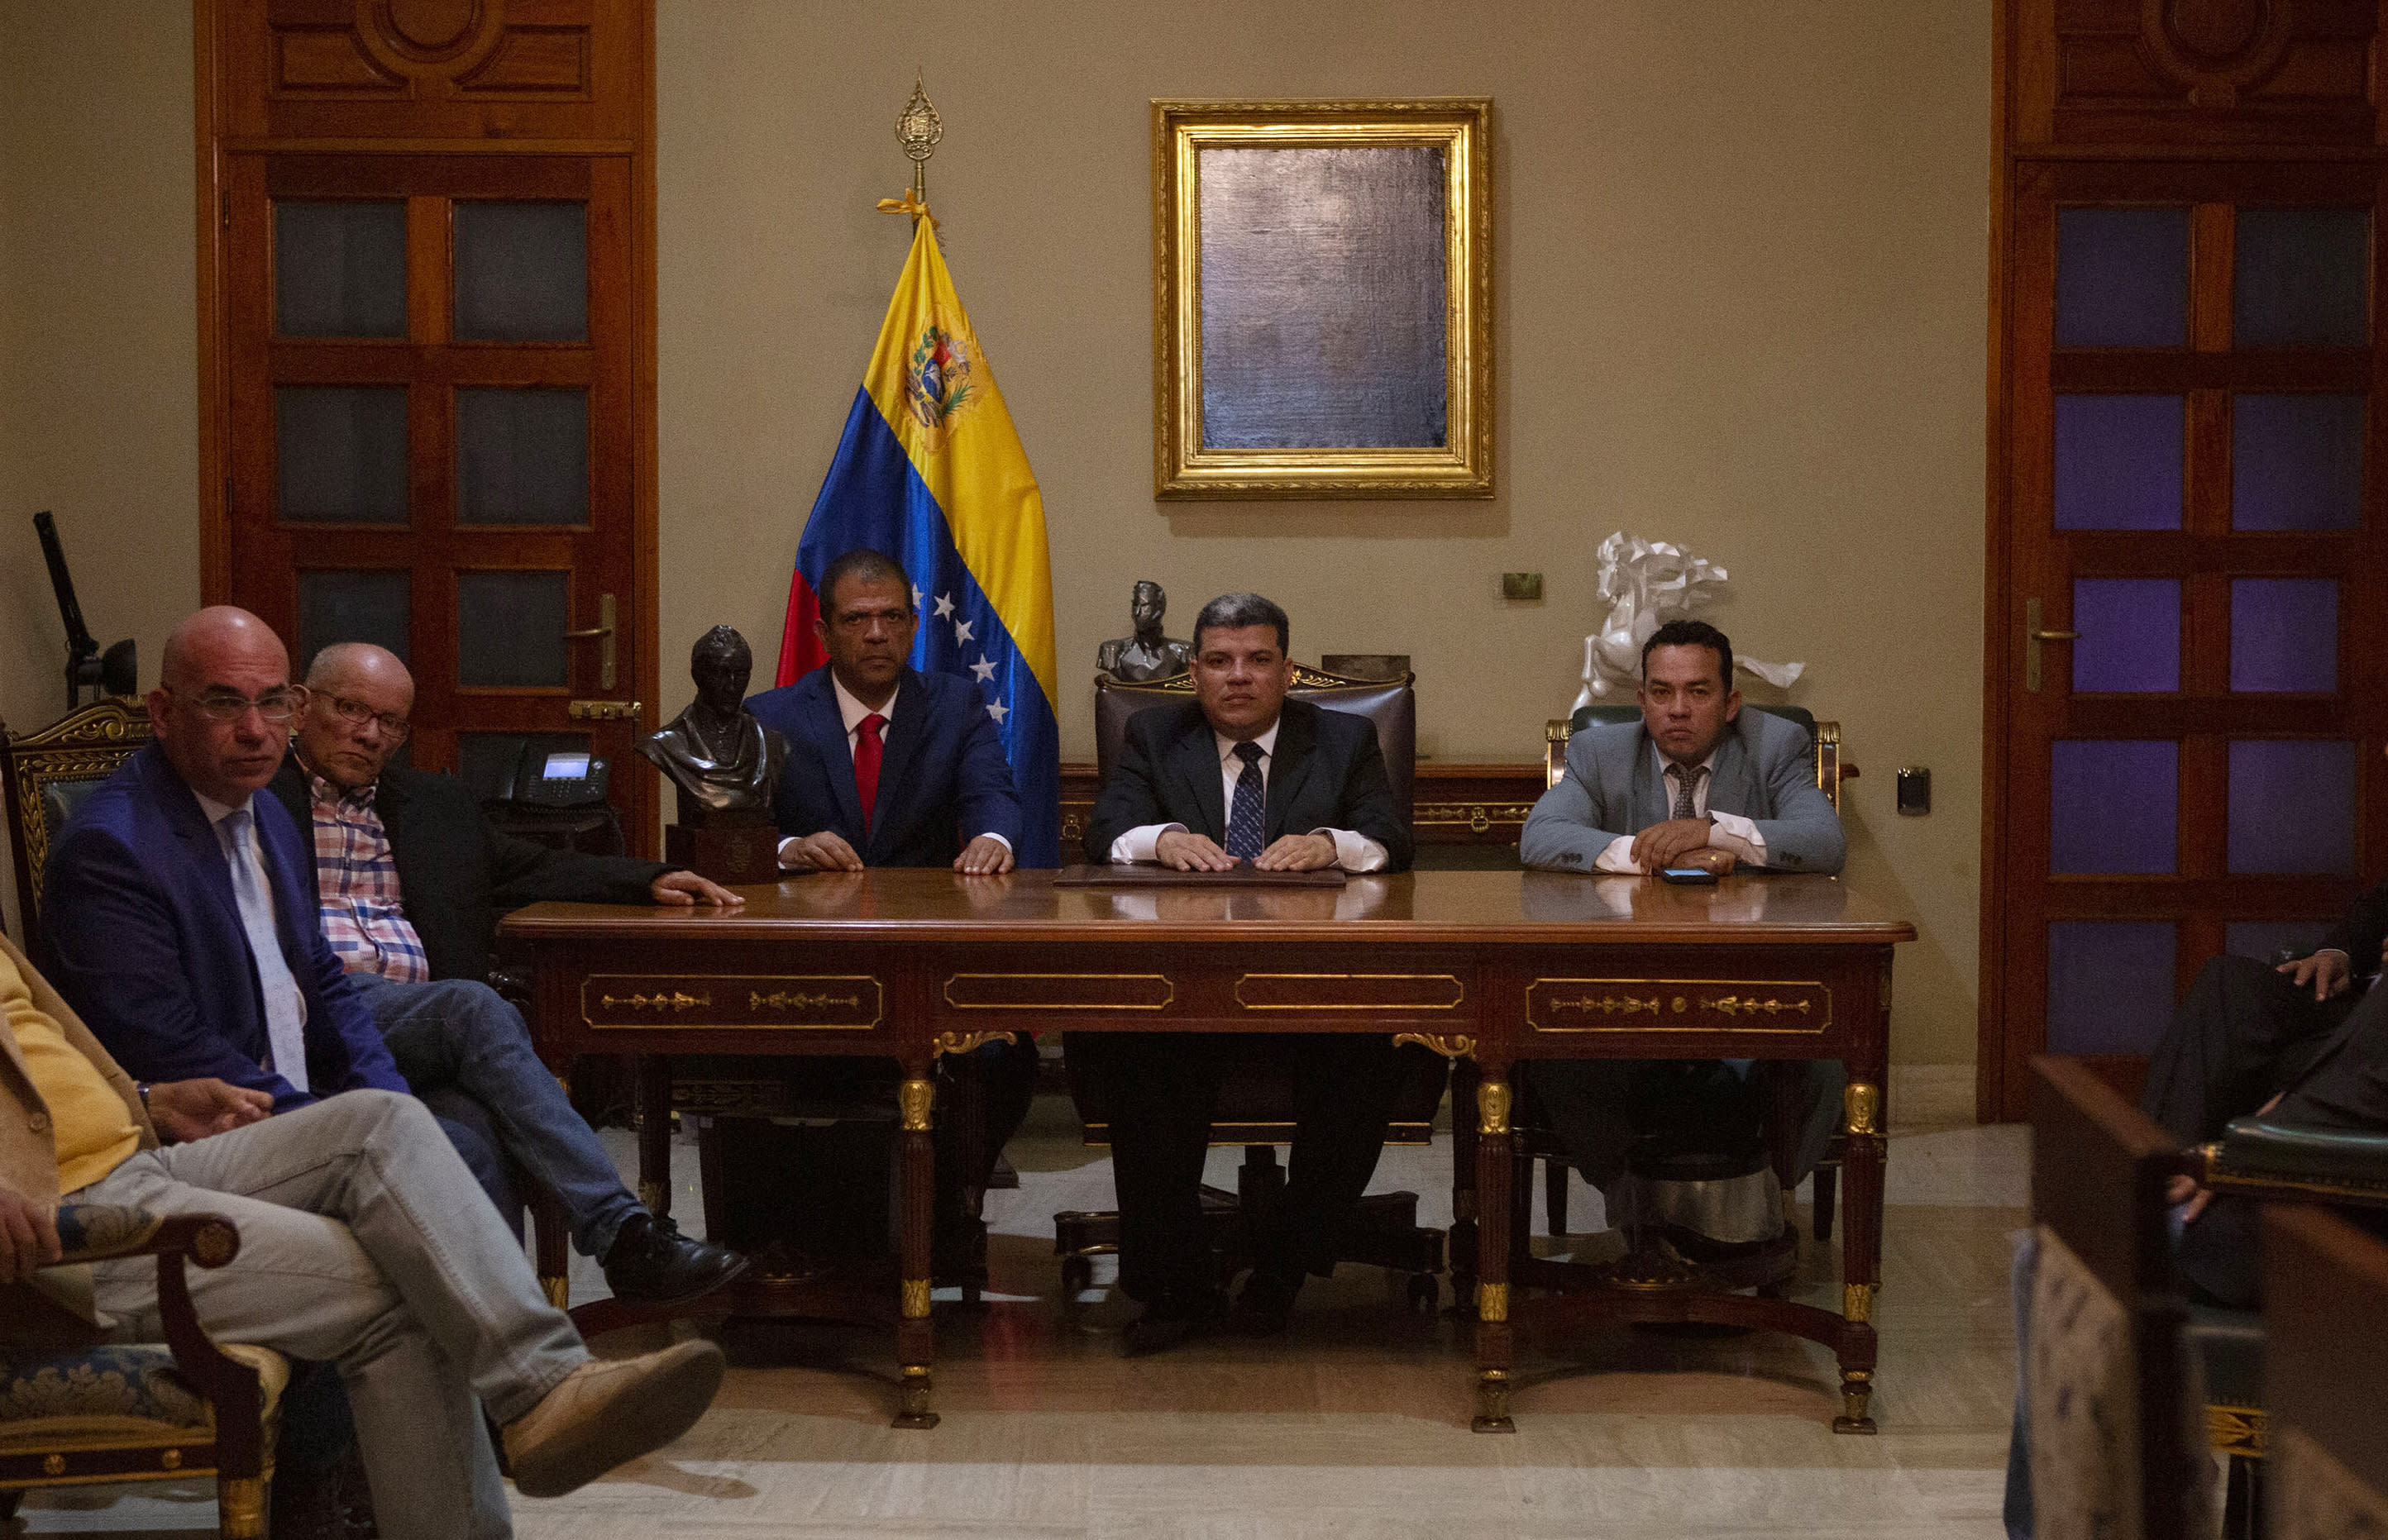 Lawmaker Luis Parra, center, sits with fellow lawmakers Franklyn Duarte, right, and Jose Noriega after they were sworn-in as president, first vice president, and second vice president of the legislature, as they pose for a photo inside the presidential office of the National Assembly in Caracas, Venezuela, Sunday, Jan. 5, 2020. Venezuelan opposition leader Juan Guaidó was violently blocked from presiding over the special session of congress where Parra, Duarte and Noriega tried to install a substitute in what was condemned as a hijacking of the country's last democratic institution. (AP Photo/Andrea Hernandez Briceño)